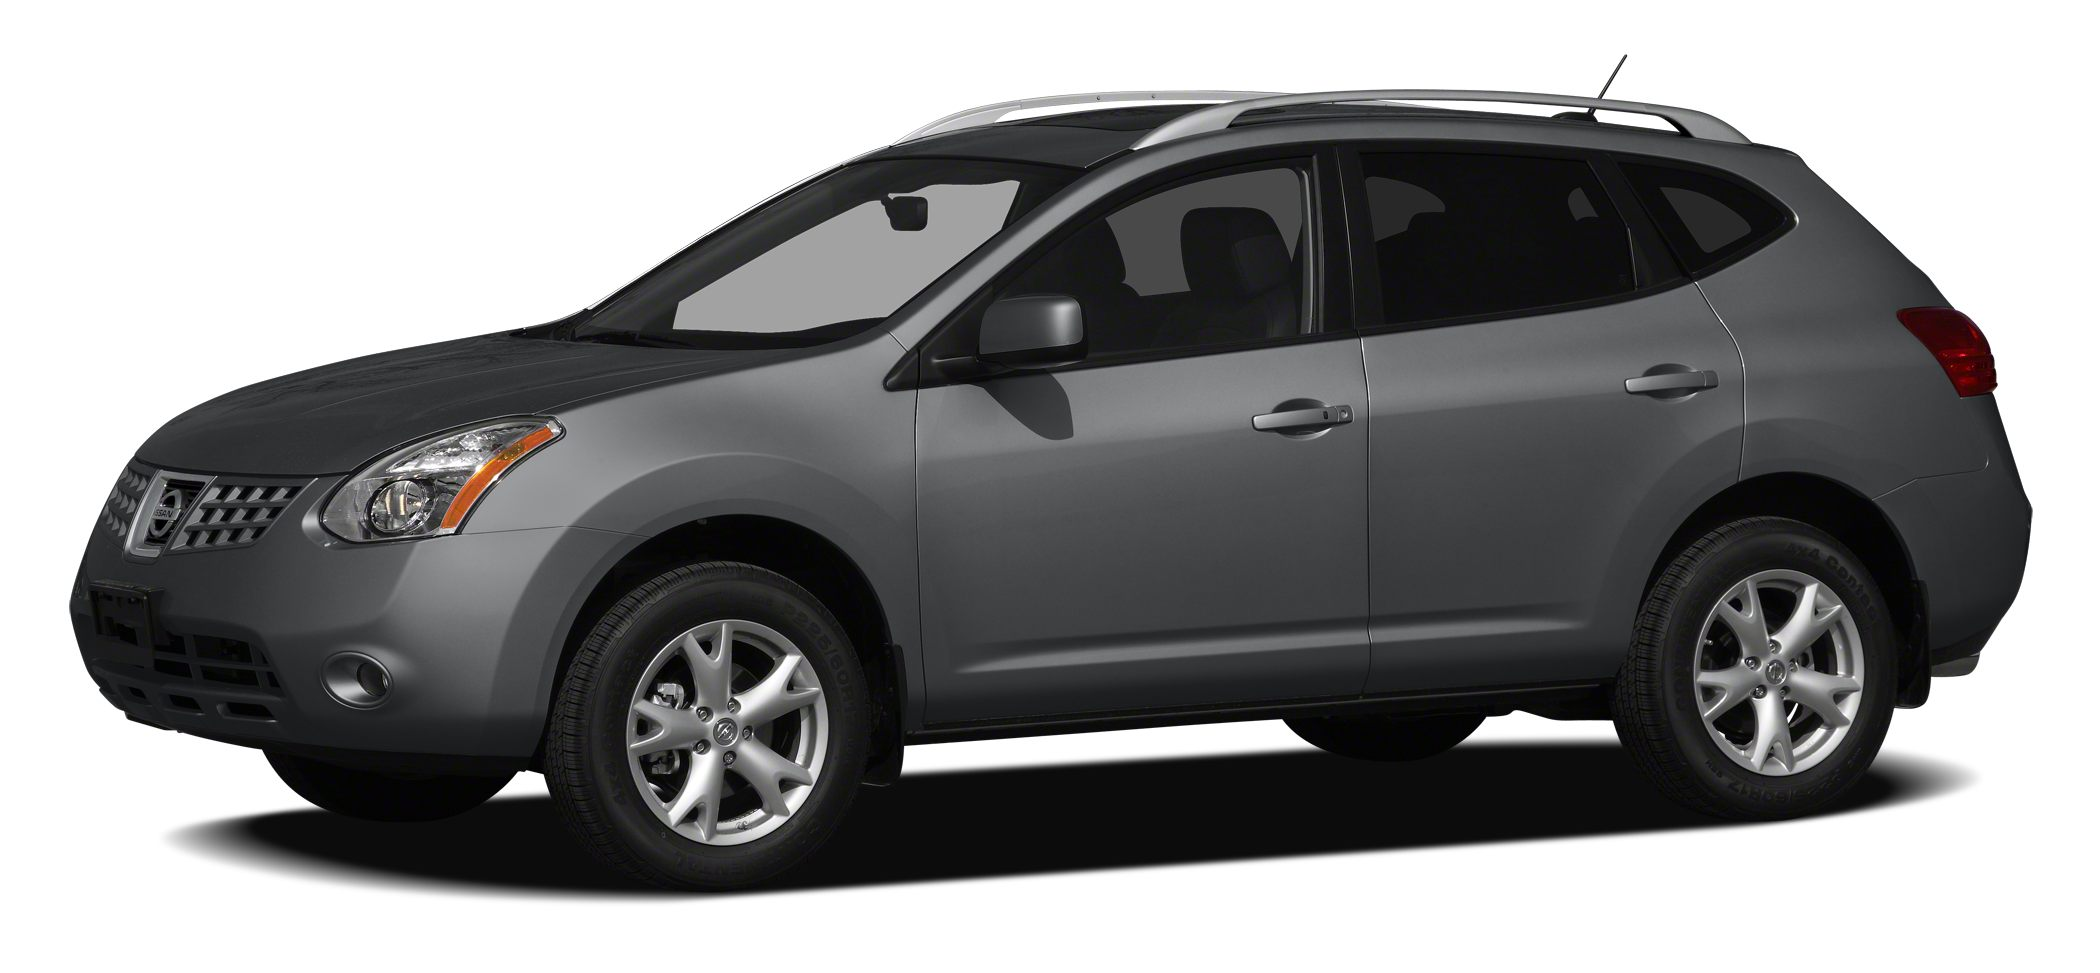 2010 Nissan Rogue SL Grab a steal on this 2010 Nissan Rogue SL before someone else takes it home